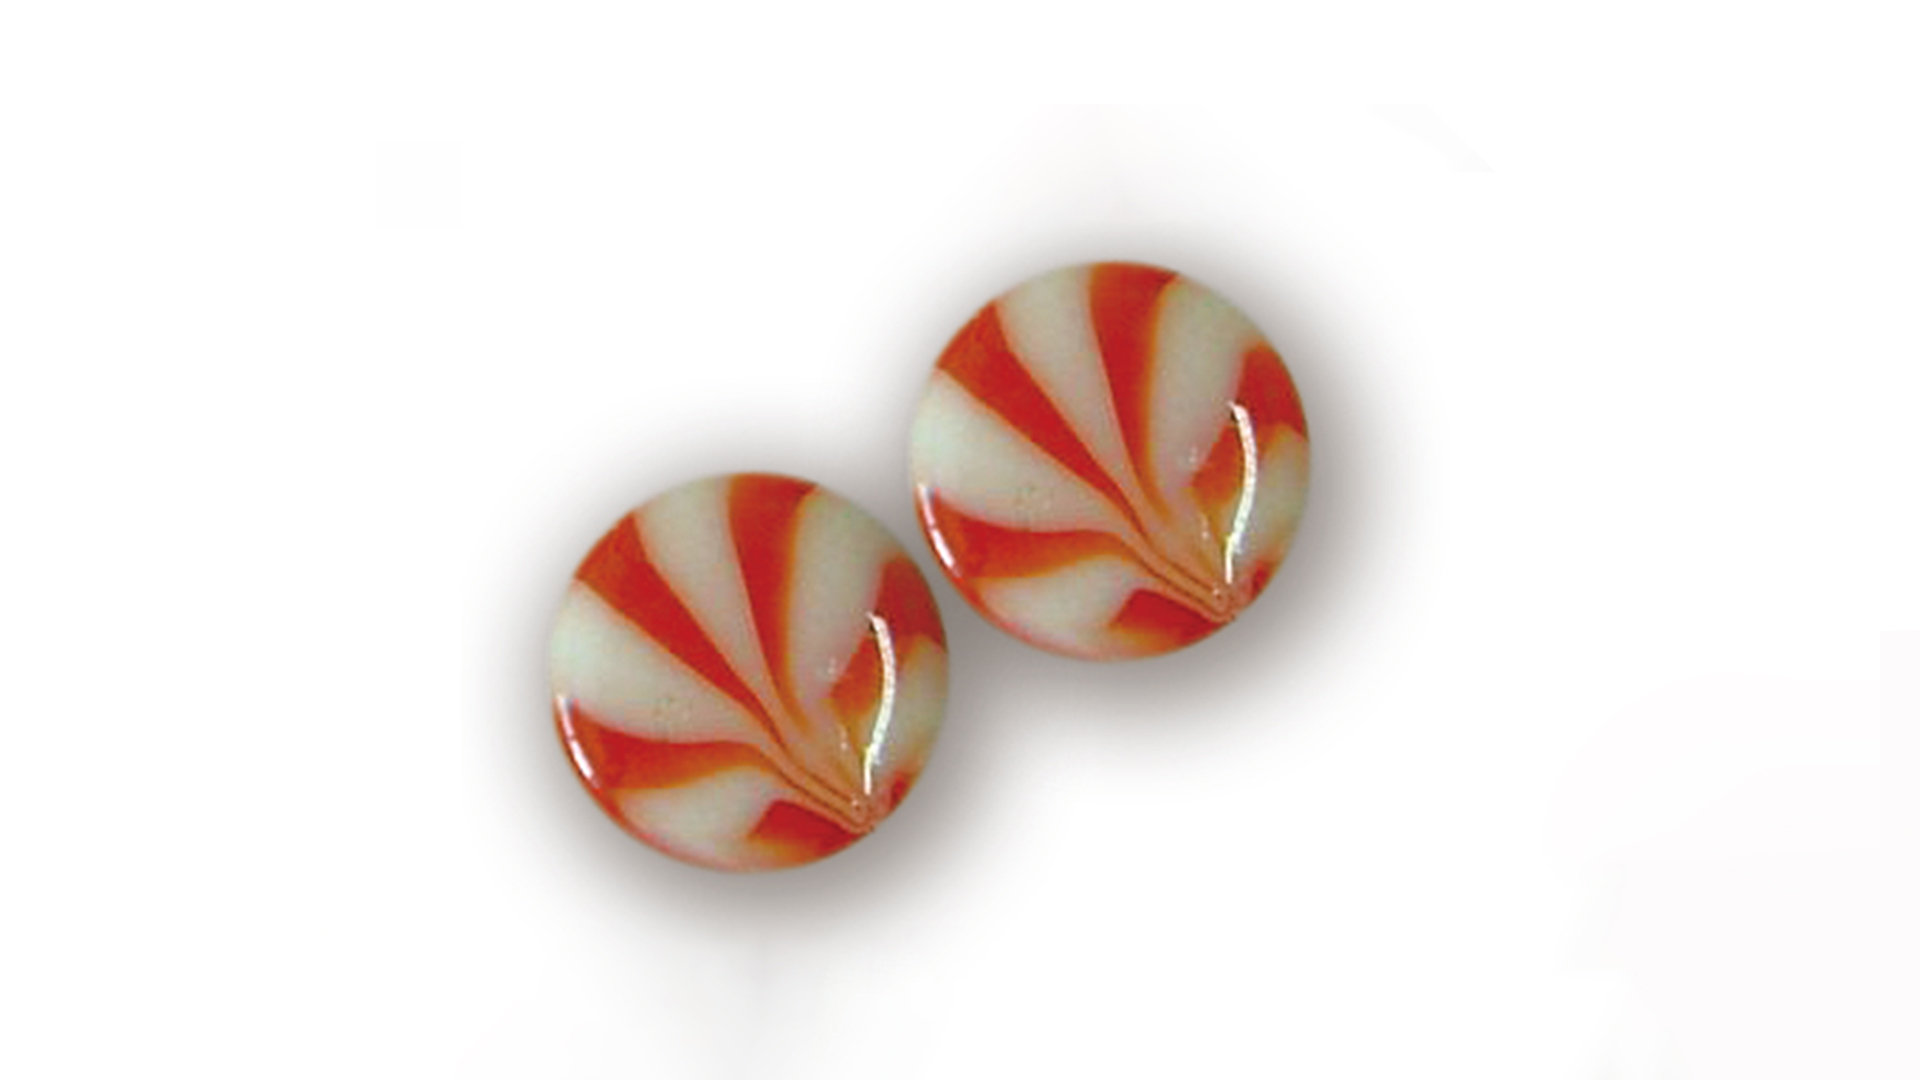 Hard candy depositing line for two color striped candy